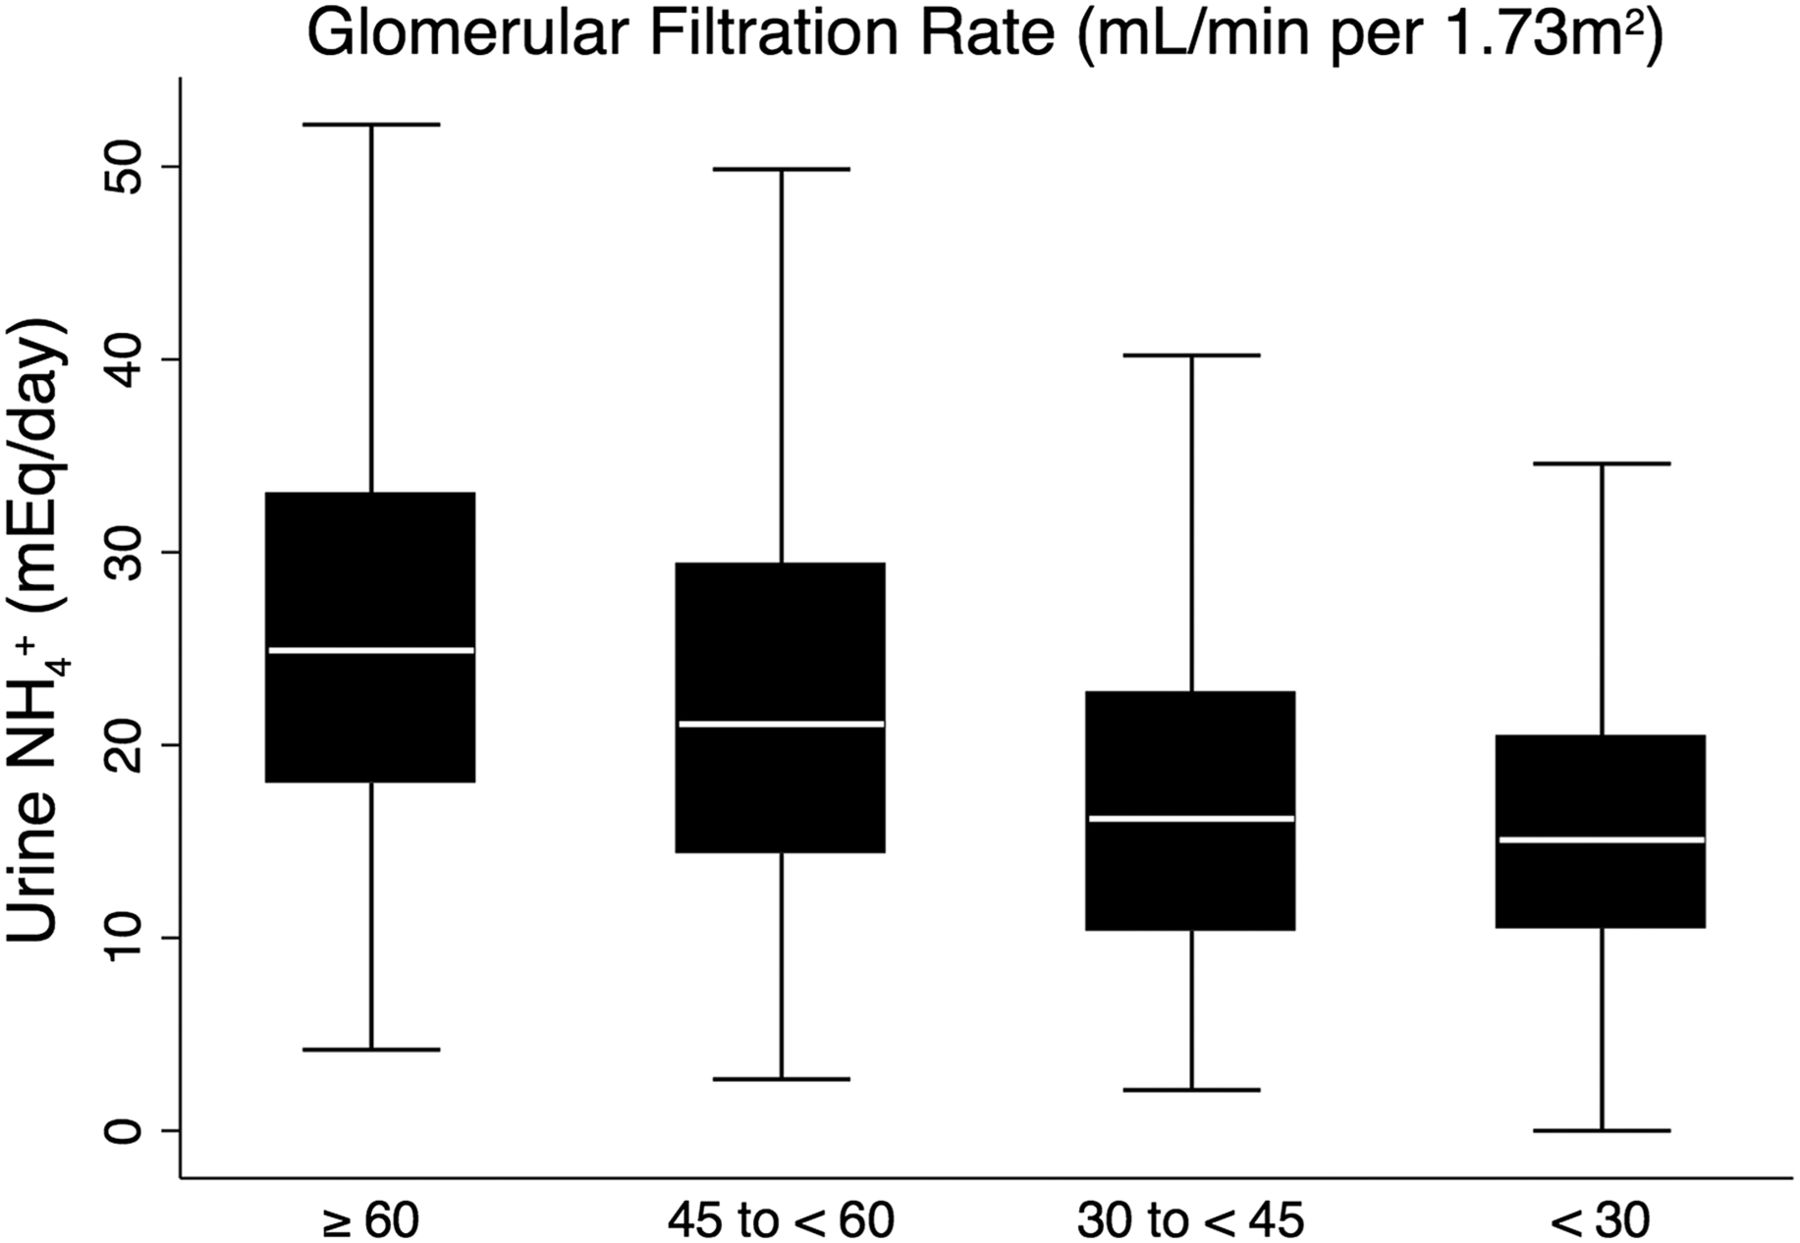 Urine Ammonium Predicts Clinical Outcomes in Hypertensive